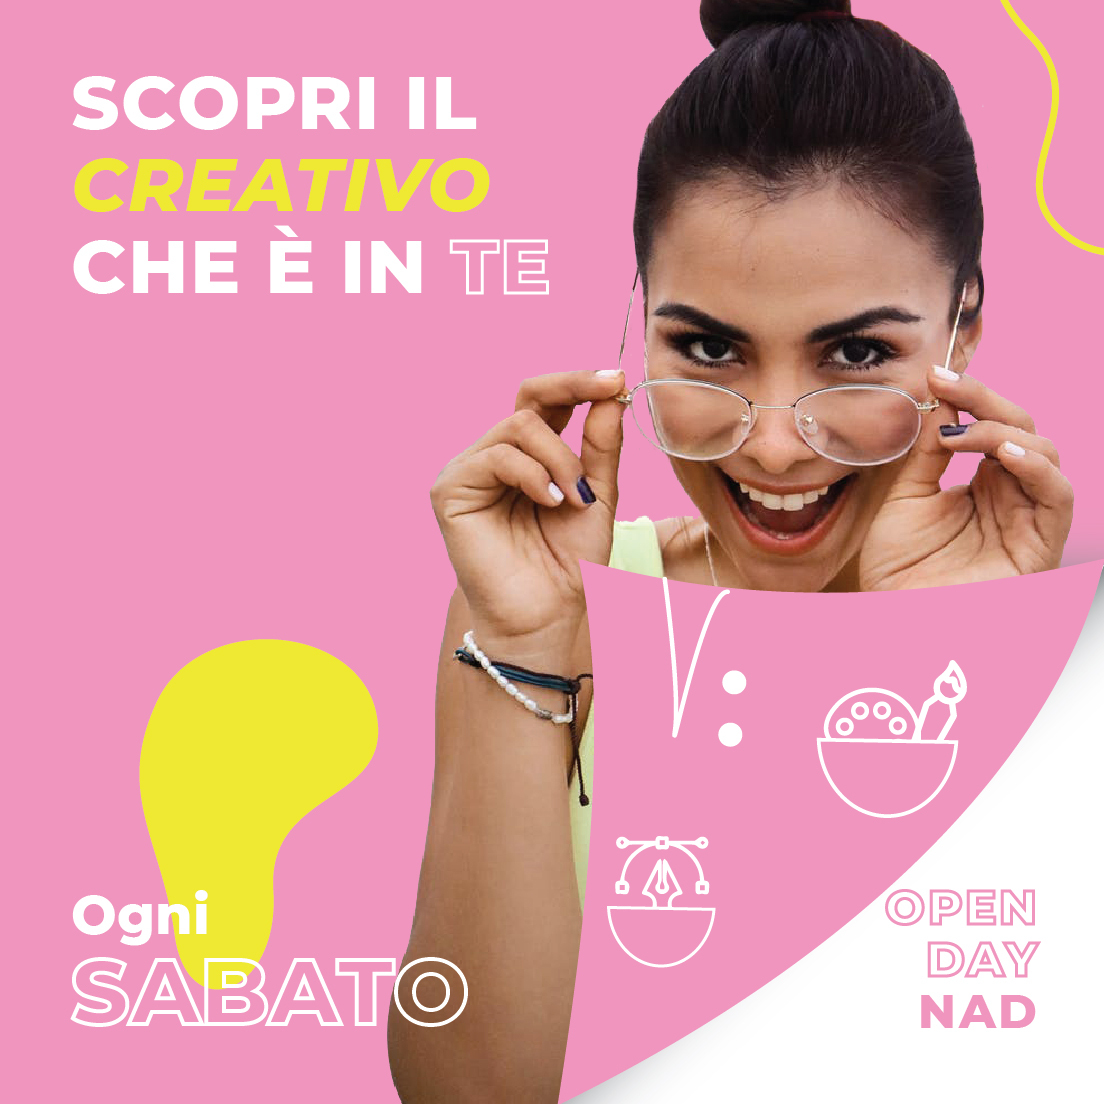 Open Day NAD Accademia Design